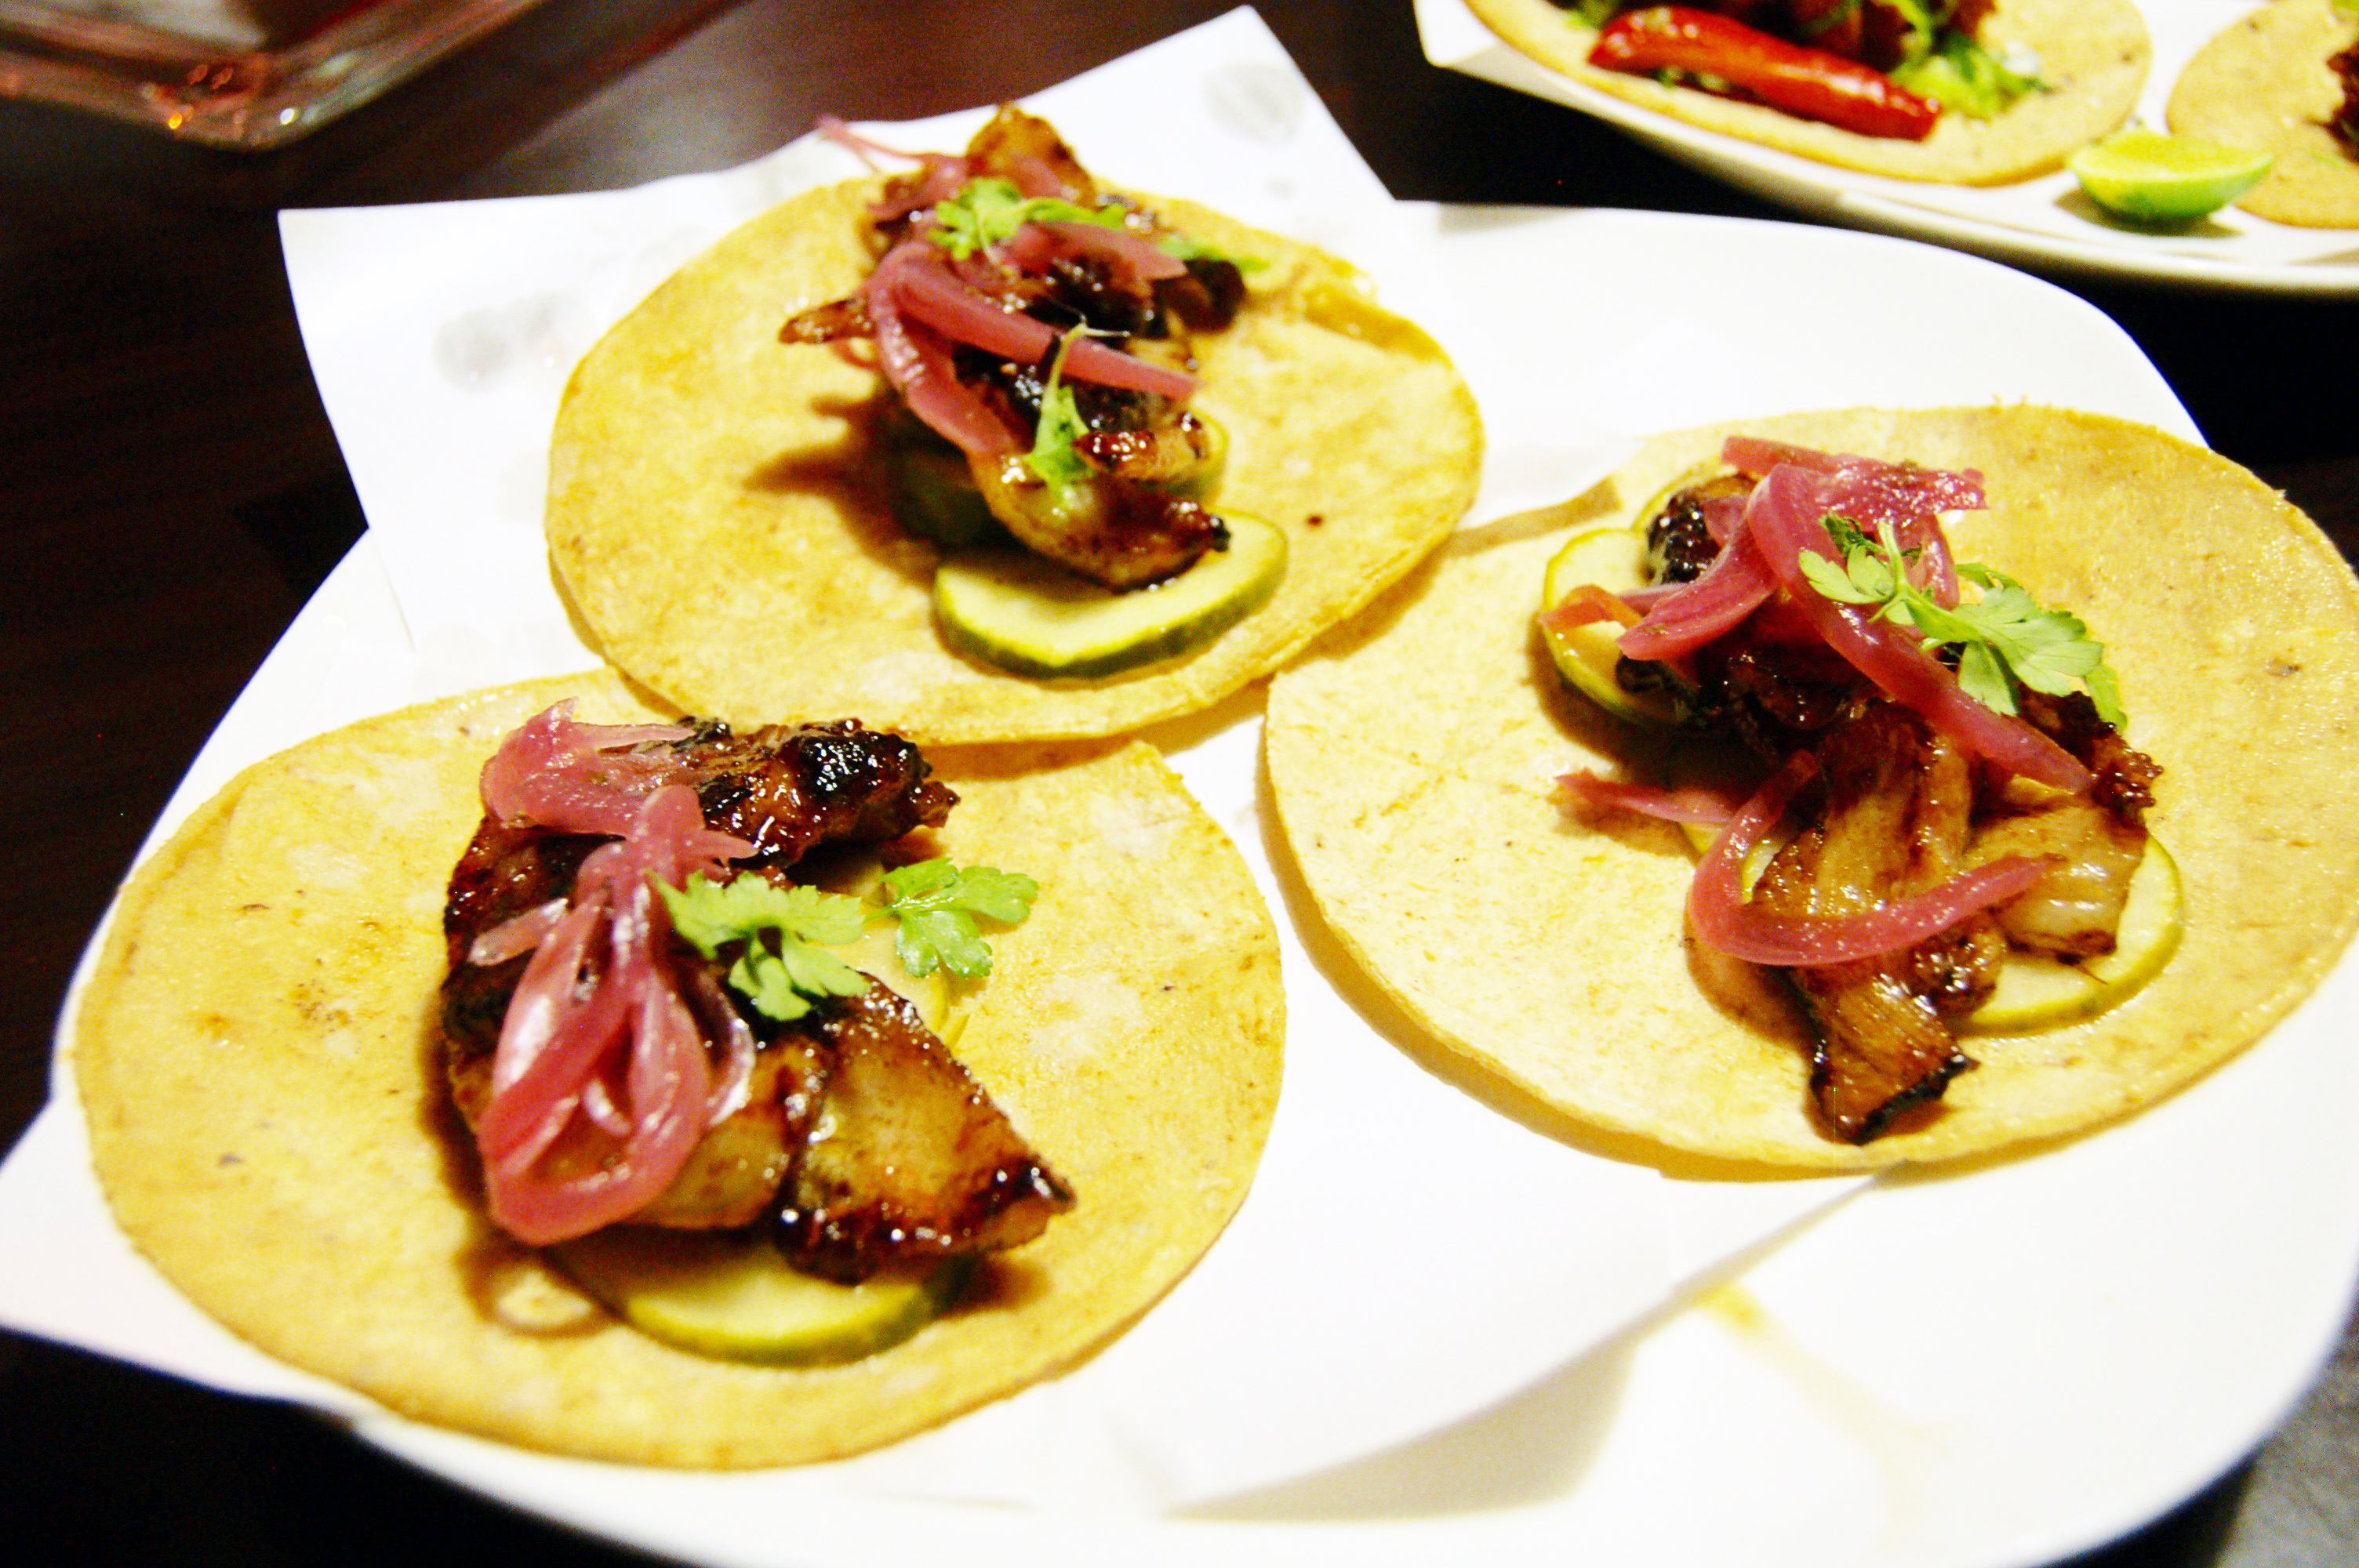 Tacos of pork belly at The Wok, Mexicali, Baja California, Mexico